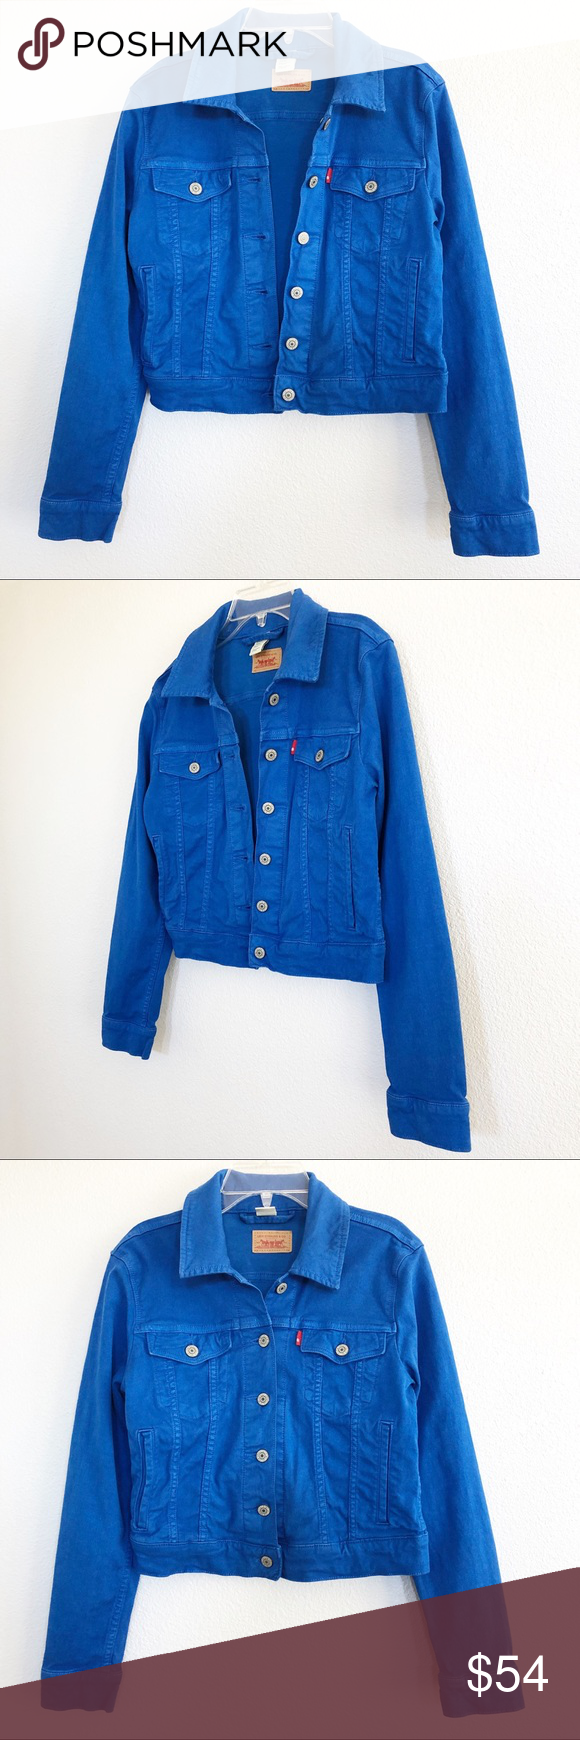 Levi S Royal Blue Crop Jean Jacket Sz Small Levi S Royal Blue Crop Jean Jacket Sz Small Pre Owned In Excellent Condition This Trendy Crop Jacket Pairs Well W [ 1740 x 580 Pixel ]